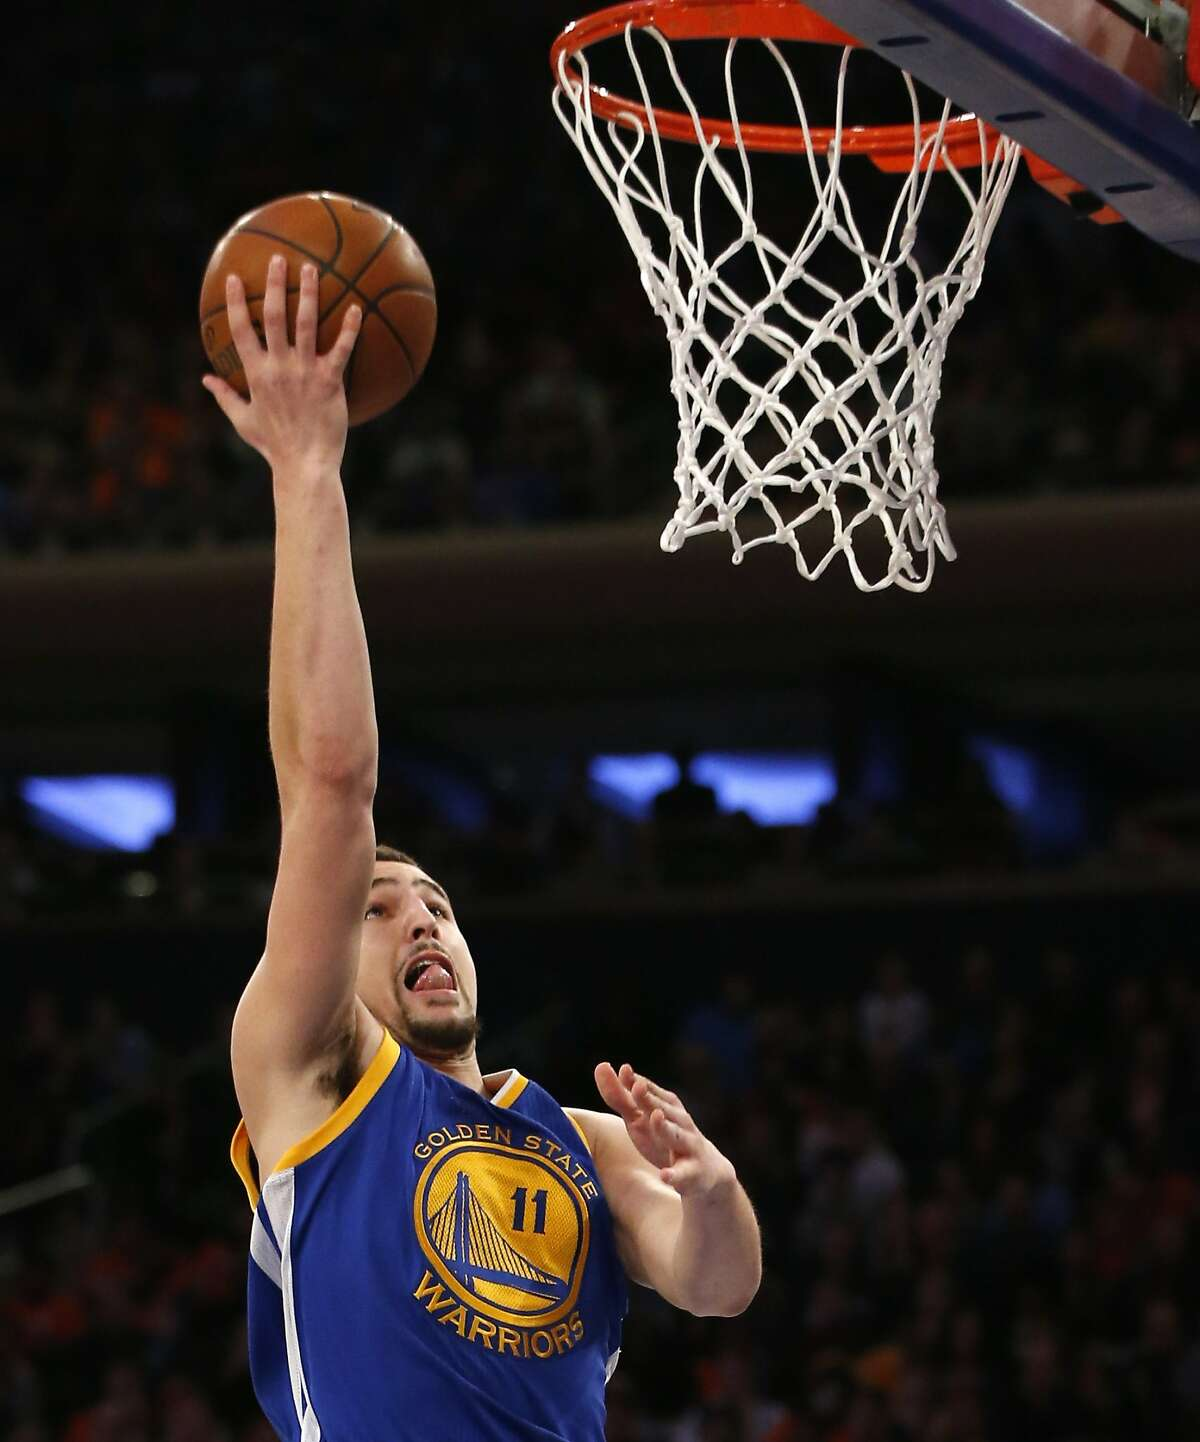 Golden State Warriors guard Klay Thompson goes up for a layup unopposed in the first half of an NBA basketball game against the New York Knicks at Madison Square Garden in New York, Sunday, Jan. 31, 2016.